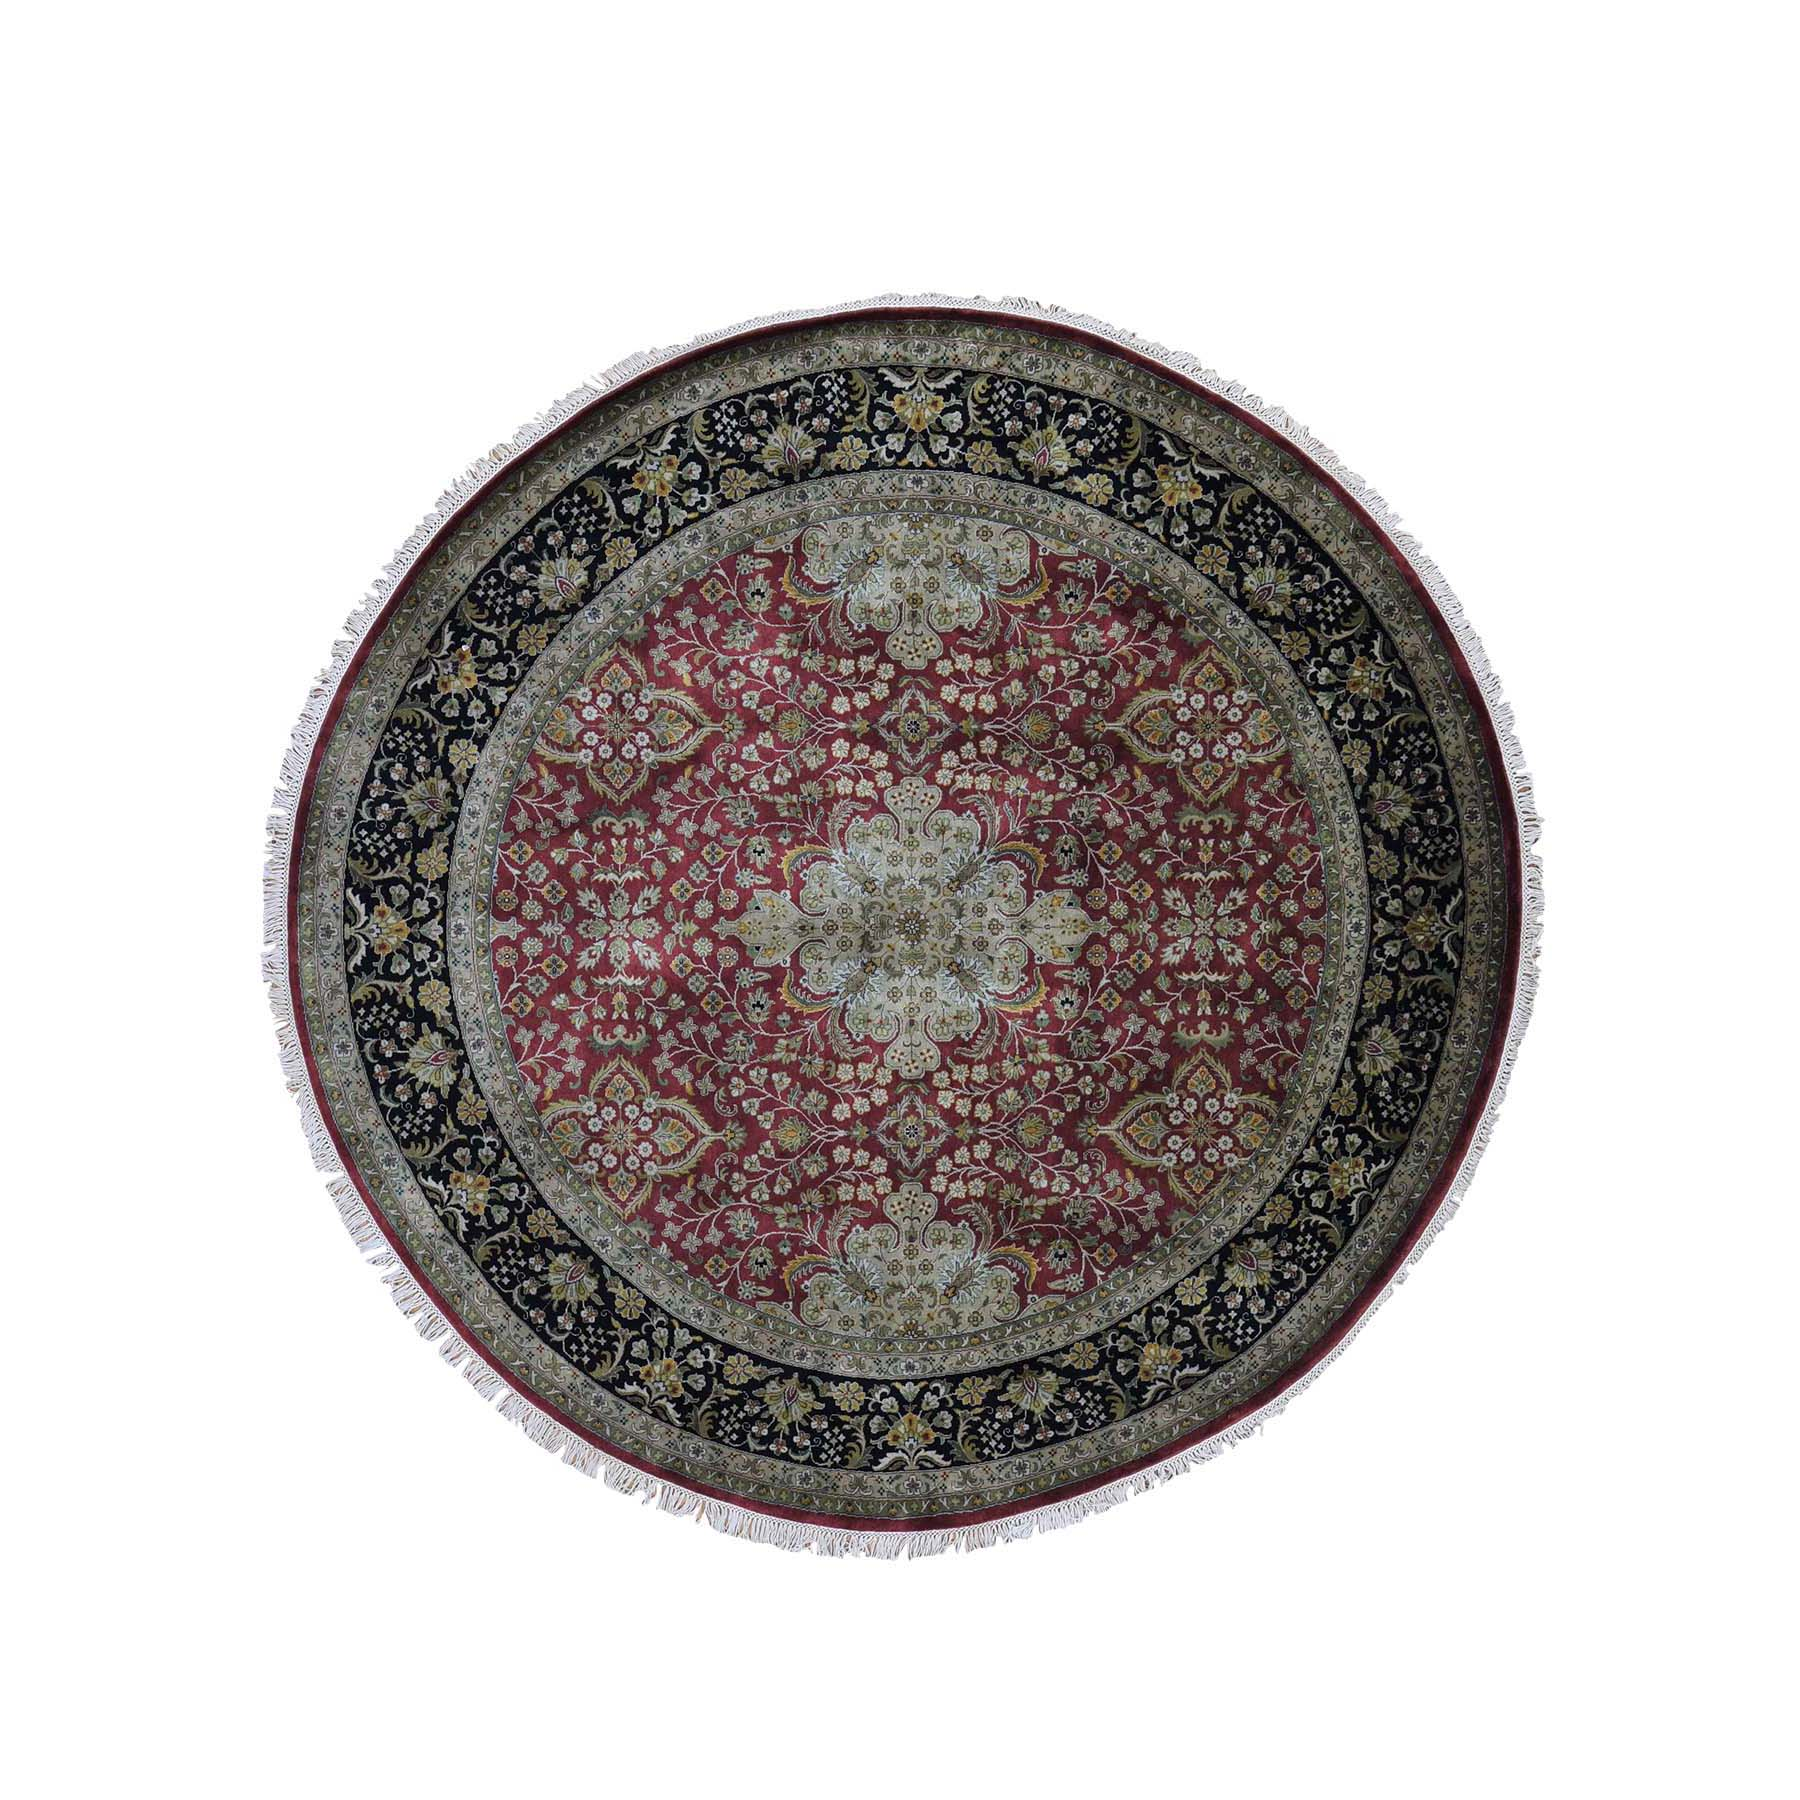 8'X8' New Zealand Wool 300 Kpsi Kashan Revival Round Hand-Knotted Oriental Rug moadbb89